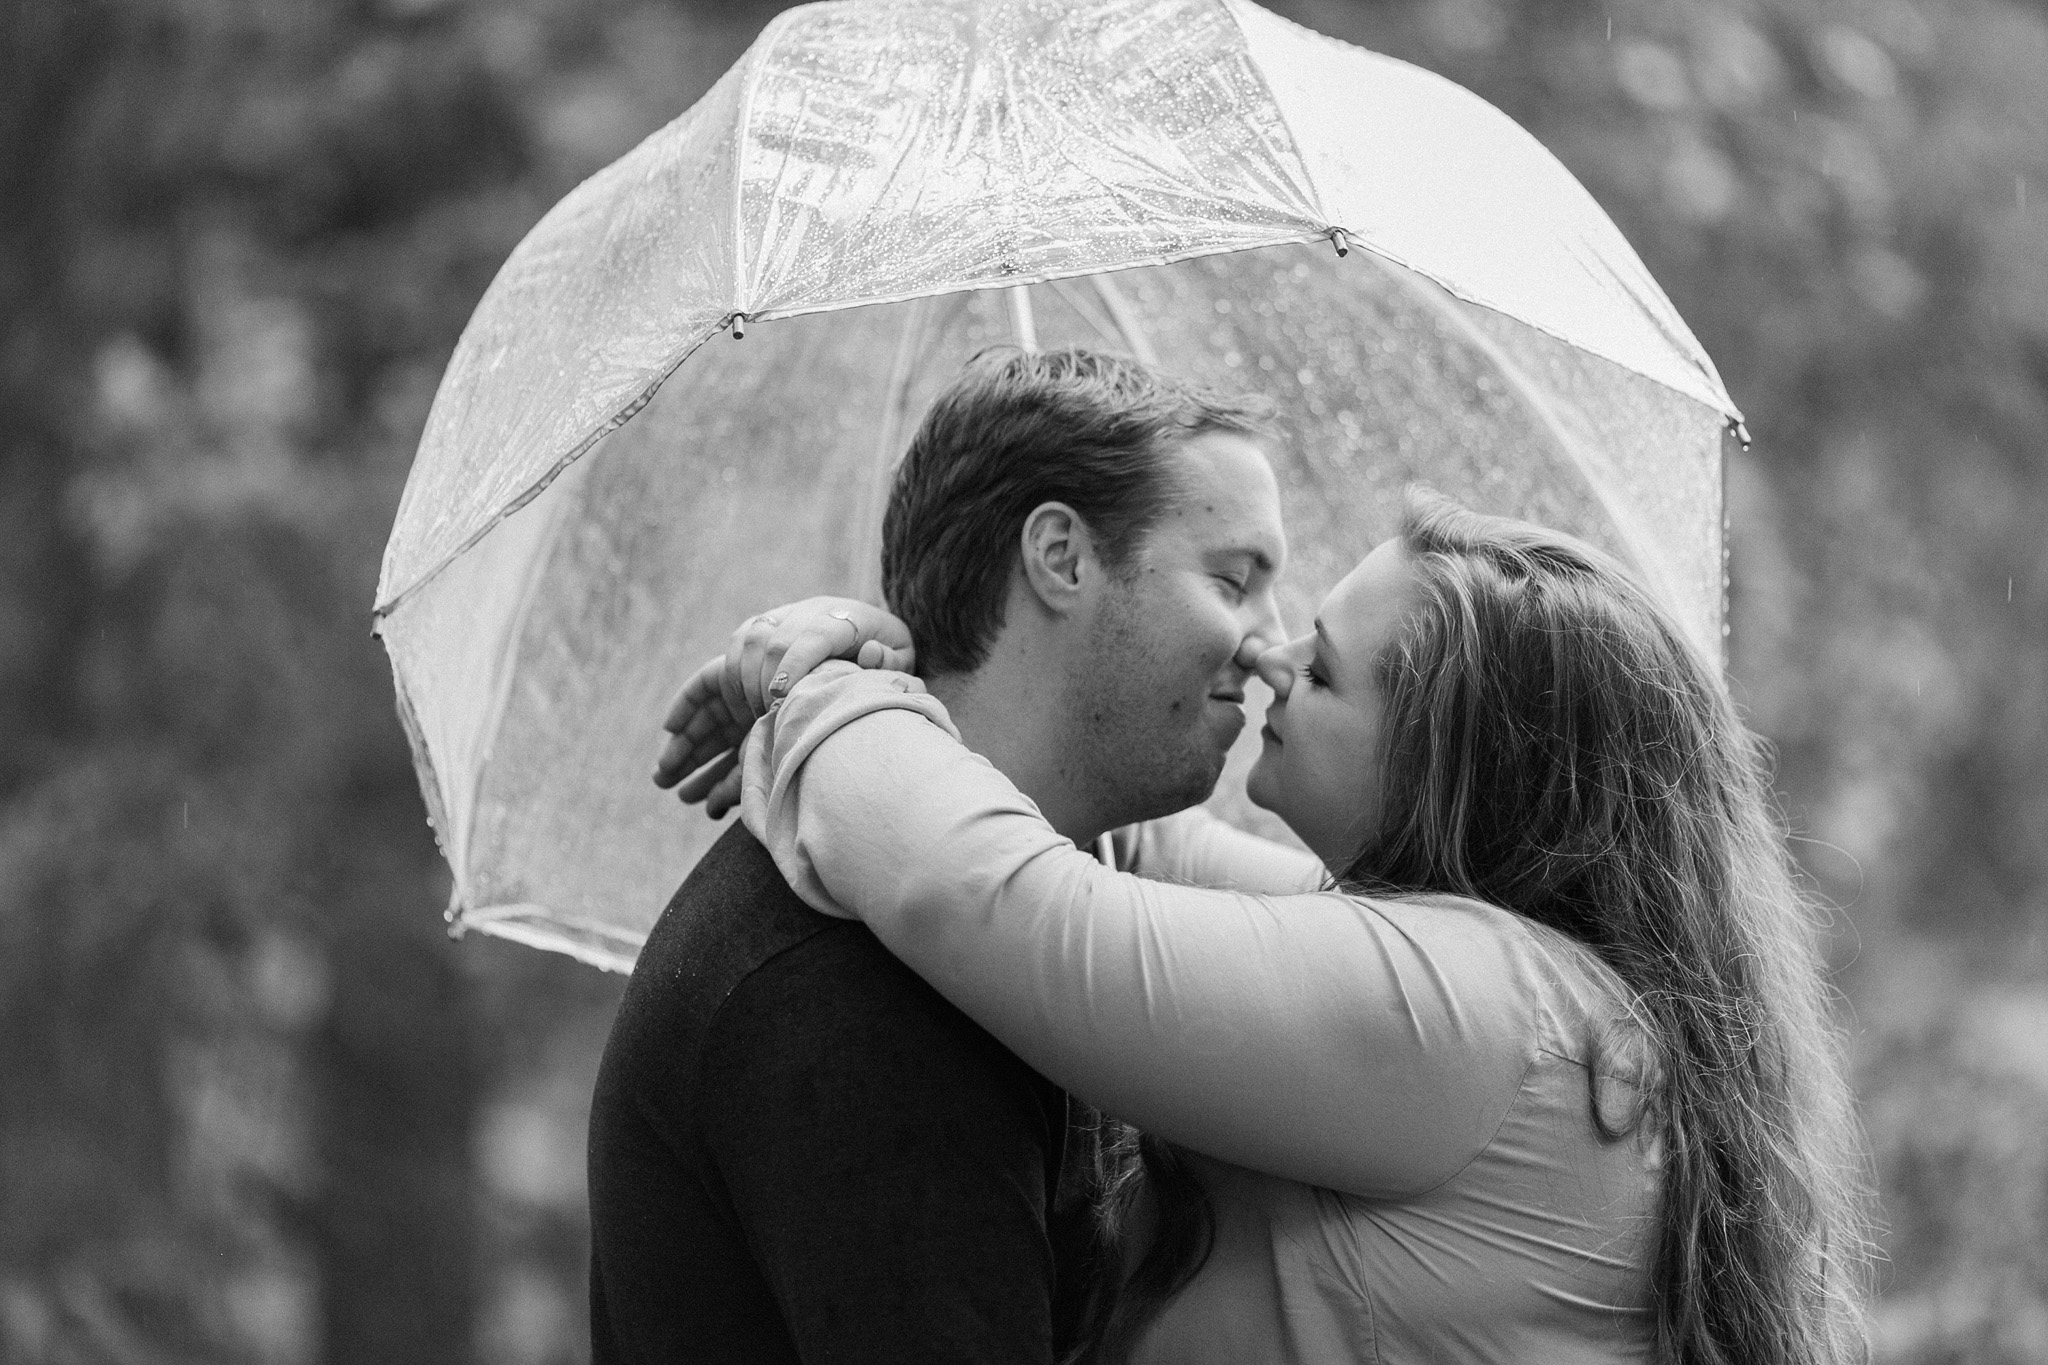 engagement photos in Payson Arizona in rain with clear umbrella